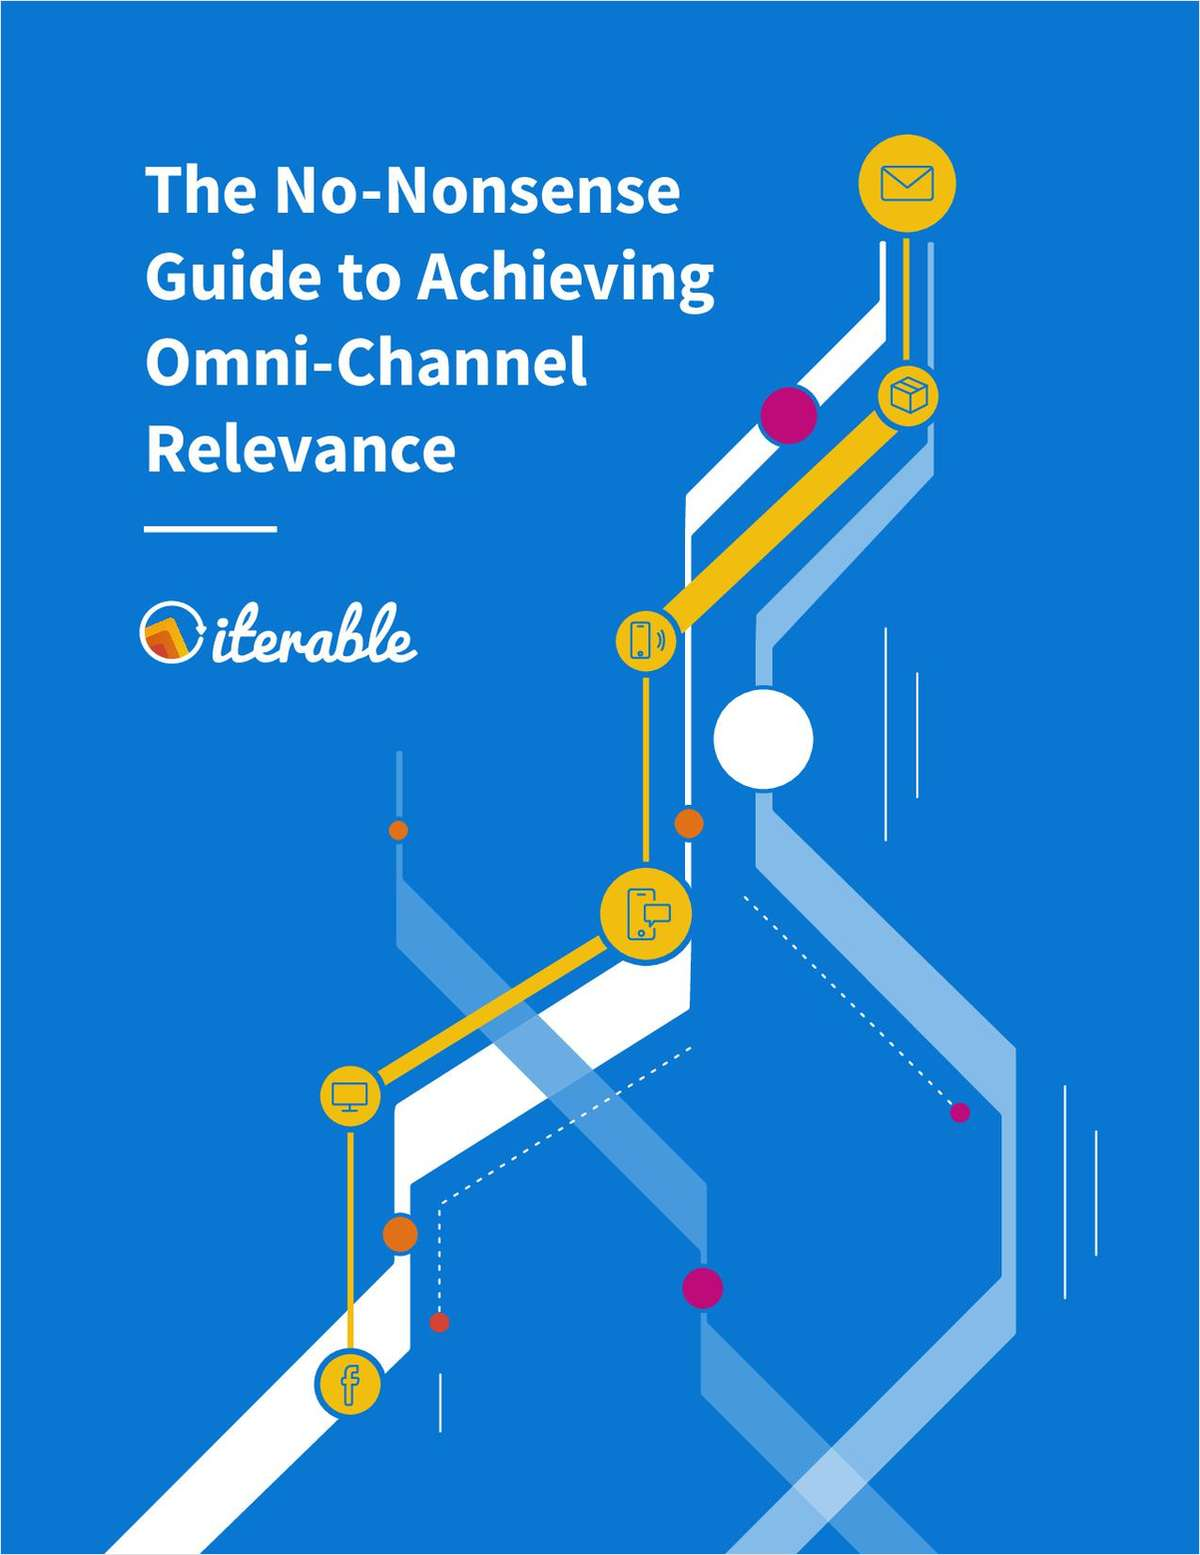 The No-Nonsense Guide to Achieving Omni-Channel Relevance